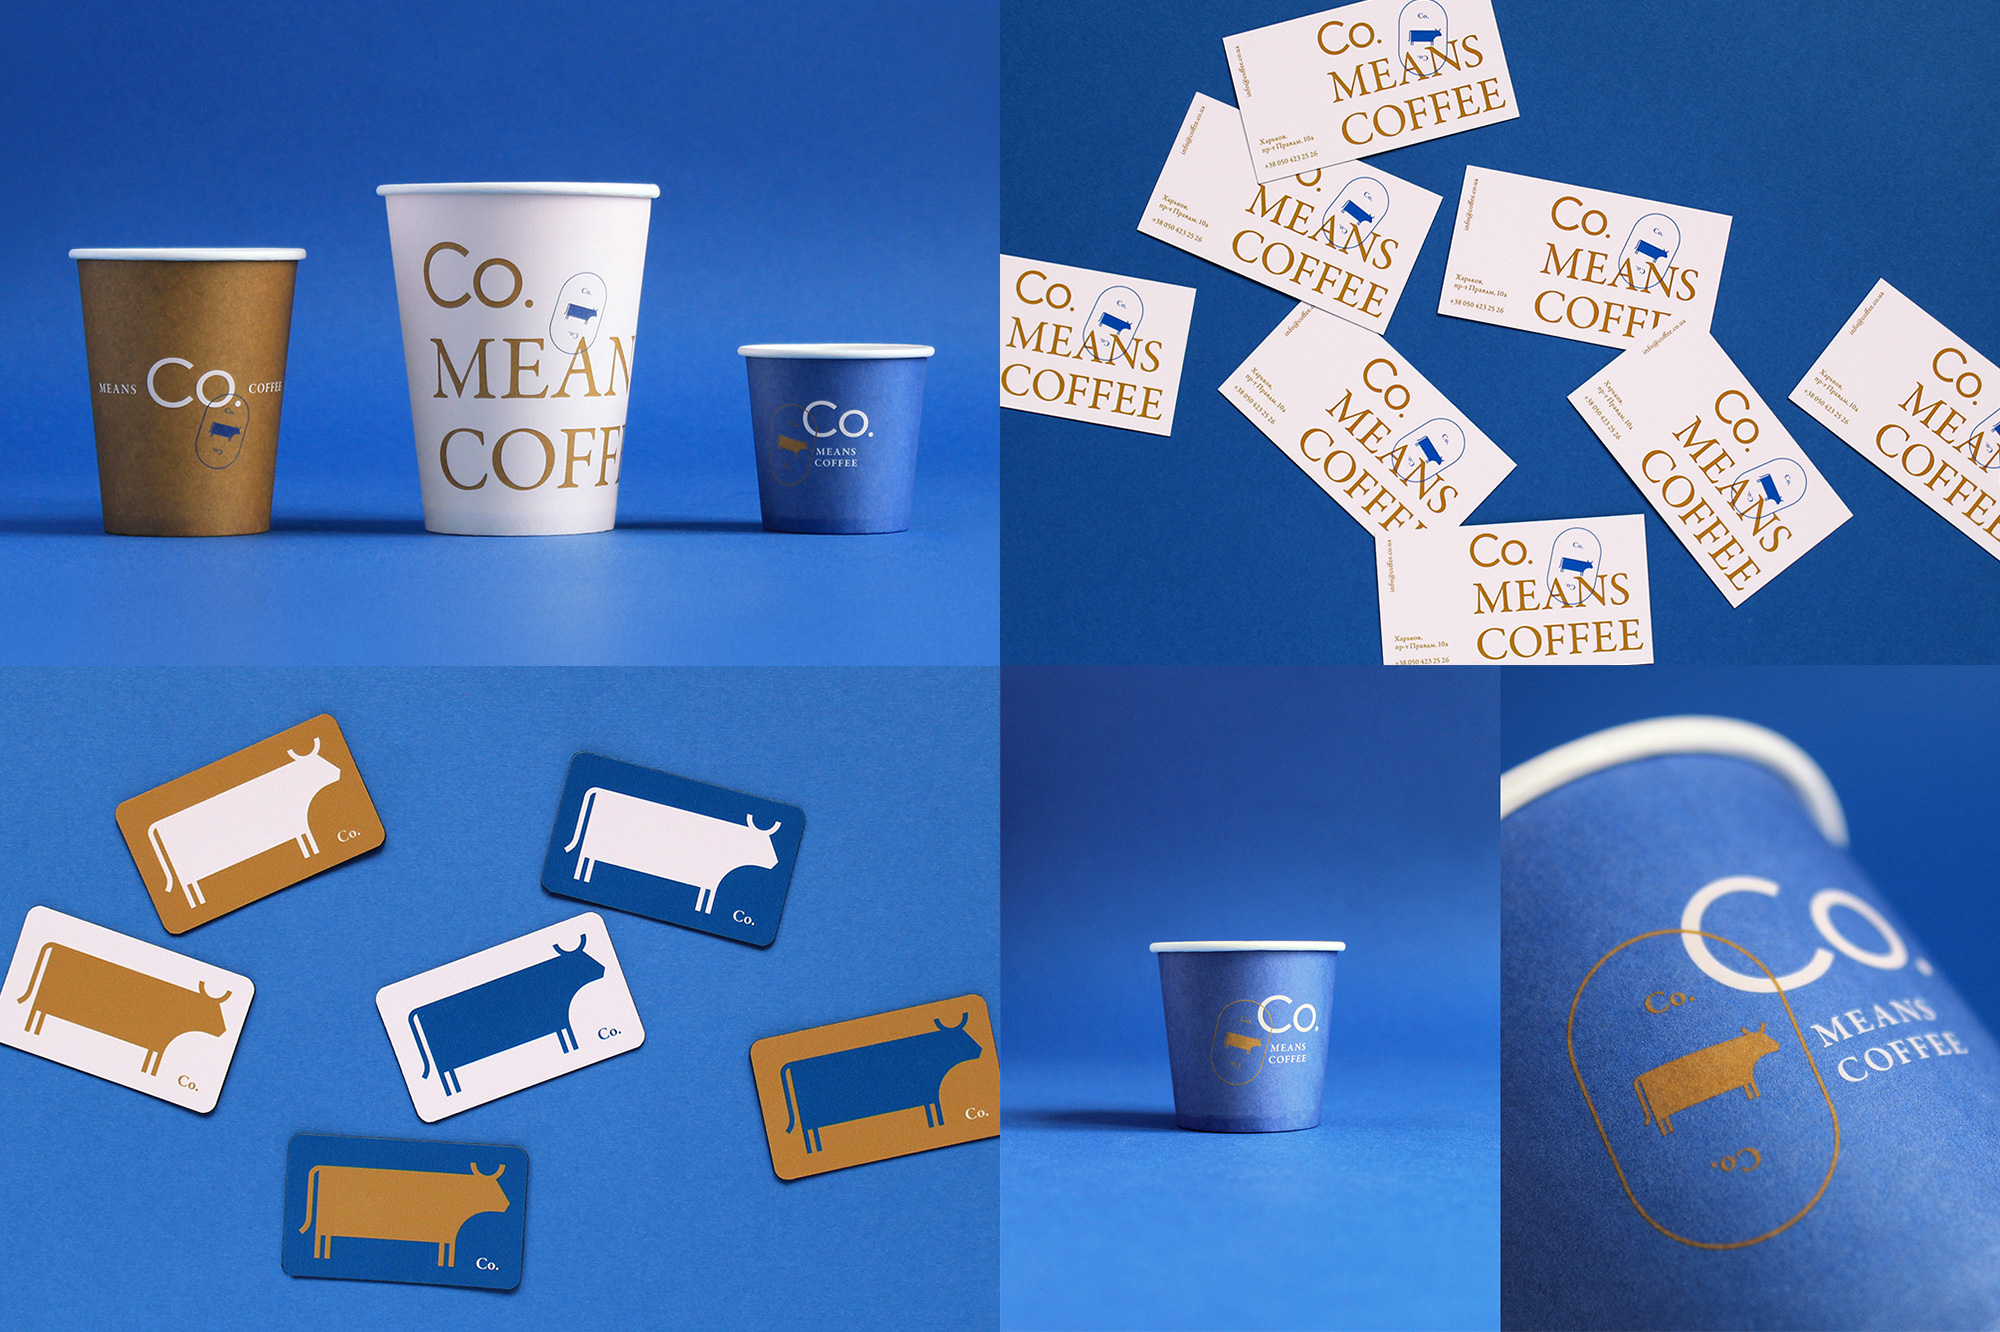 Co. Means Coffee by Canapé